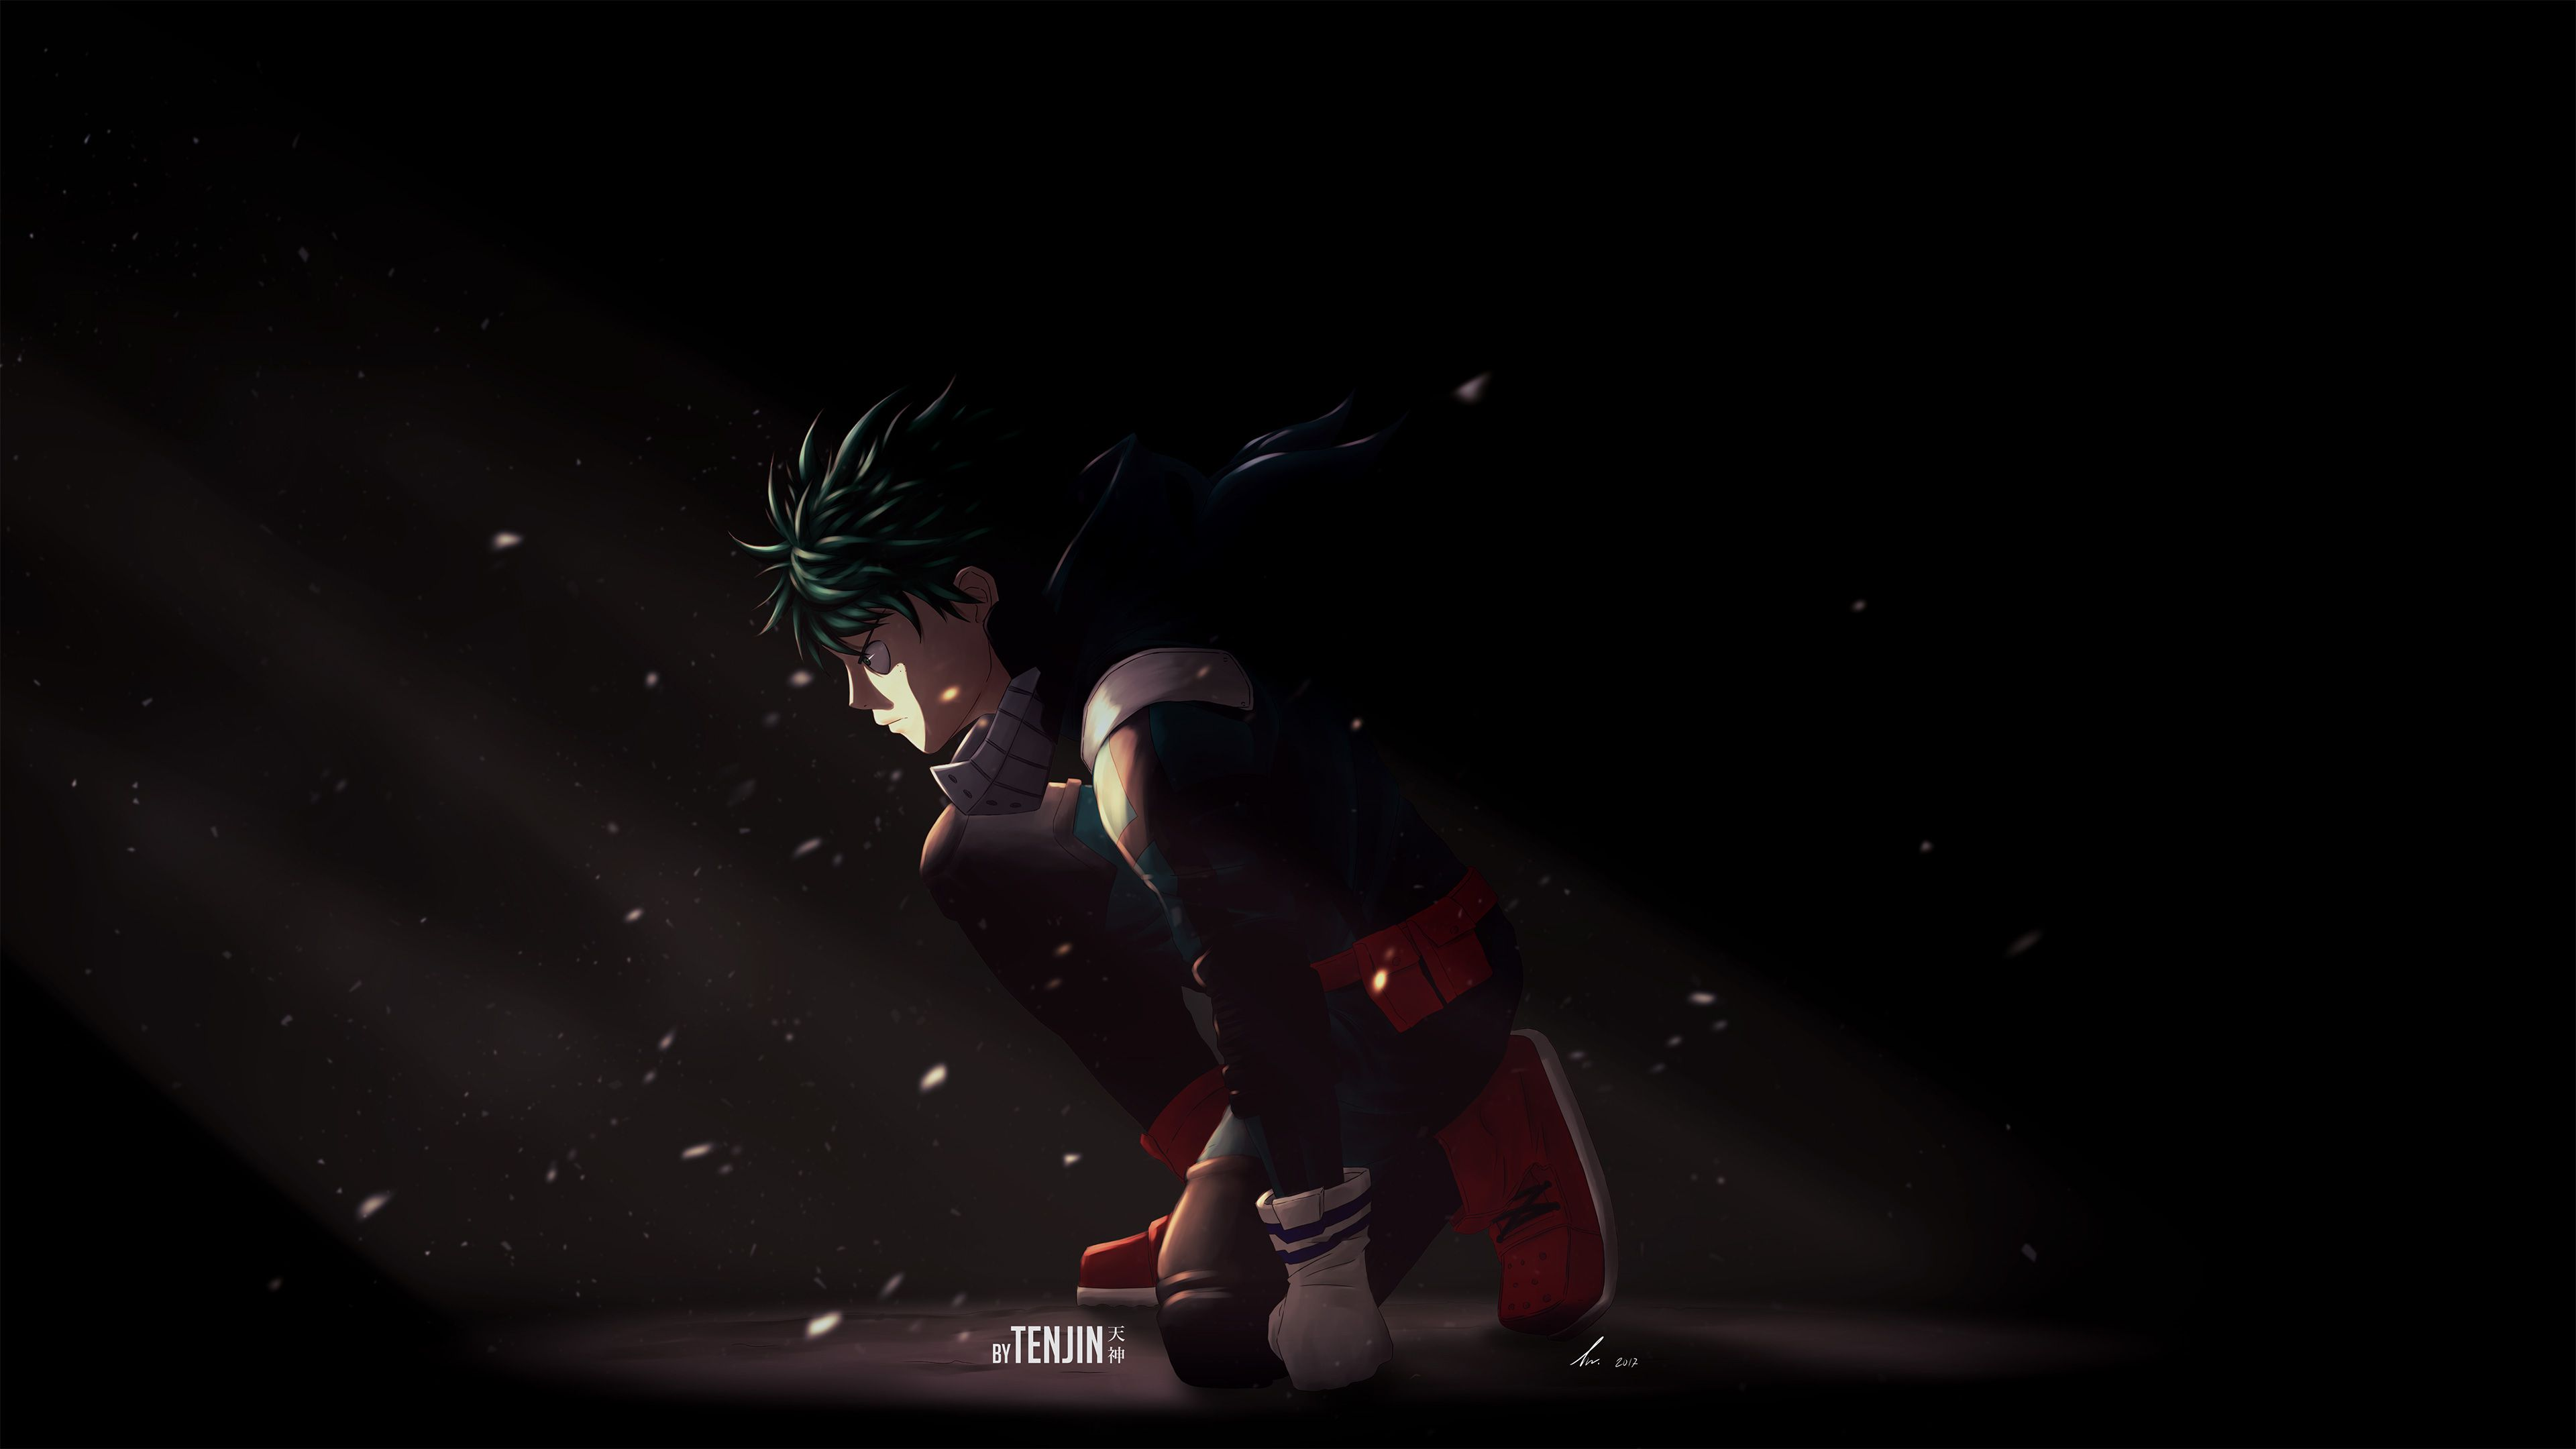 Deku My Hero Academia My Hero Academia Wallpapers Hd Wallpapers Digital Art Wallpapers Deviantart Wallpapers Artwork W My Hero Academia Me Me Me Anime Hero